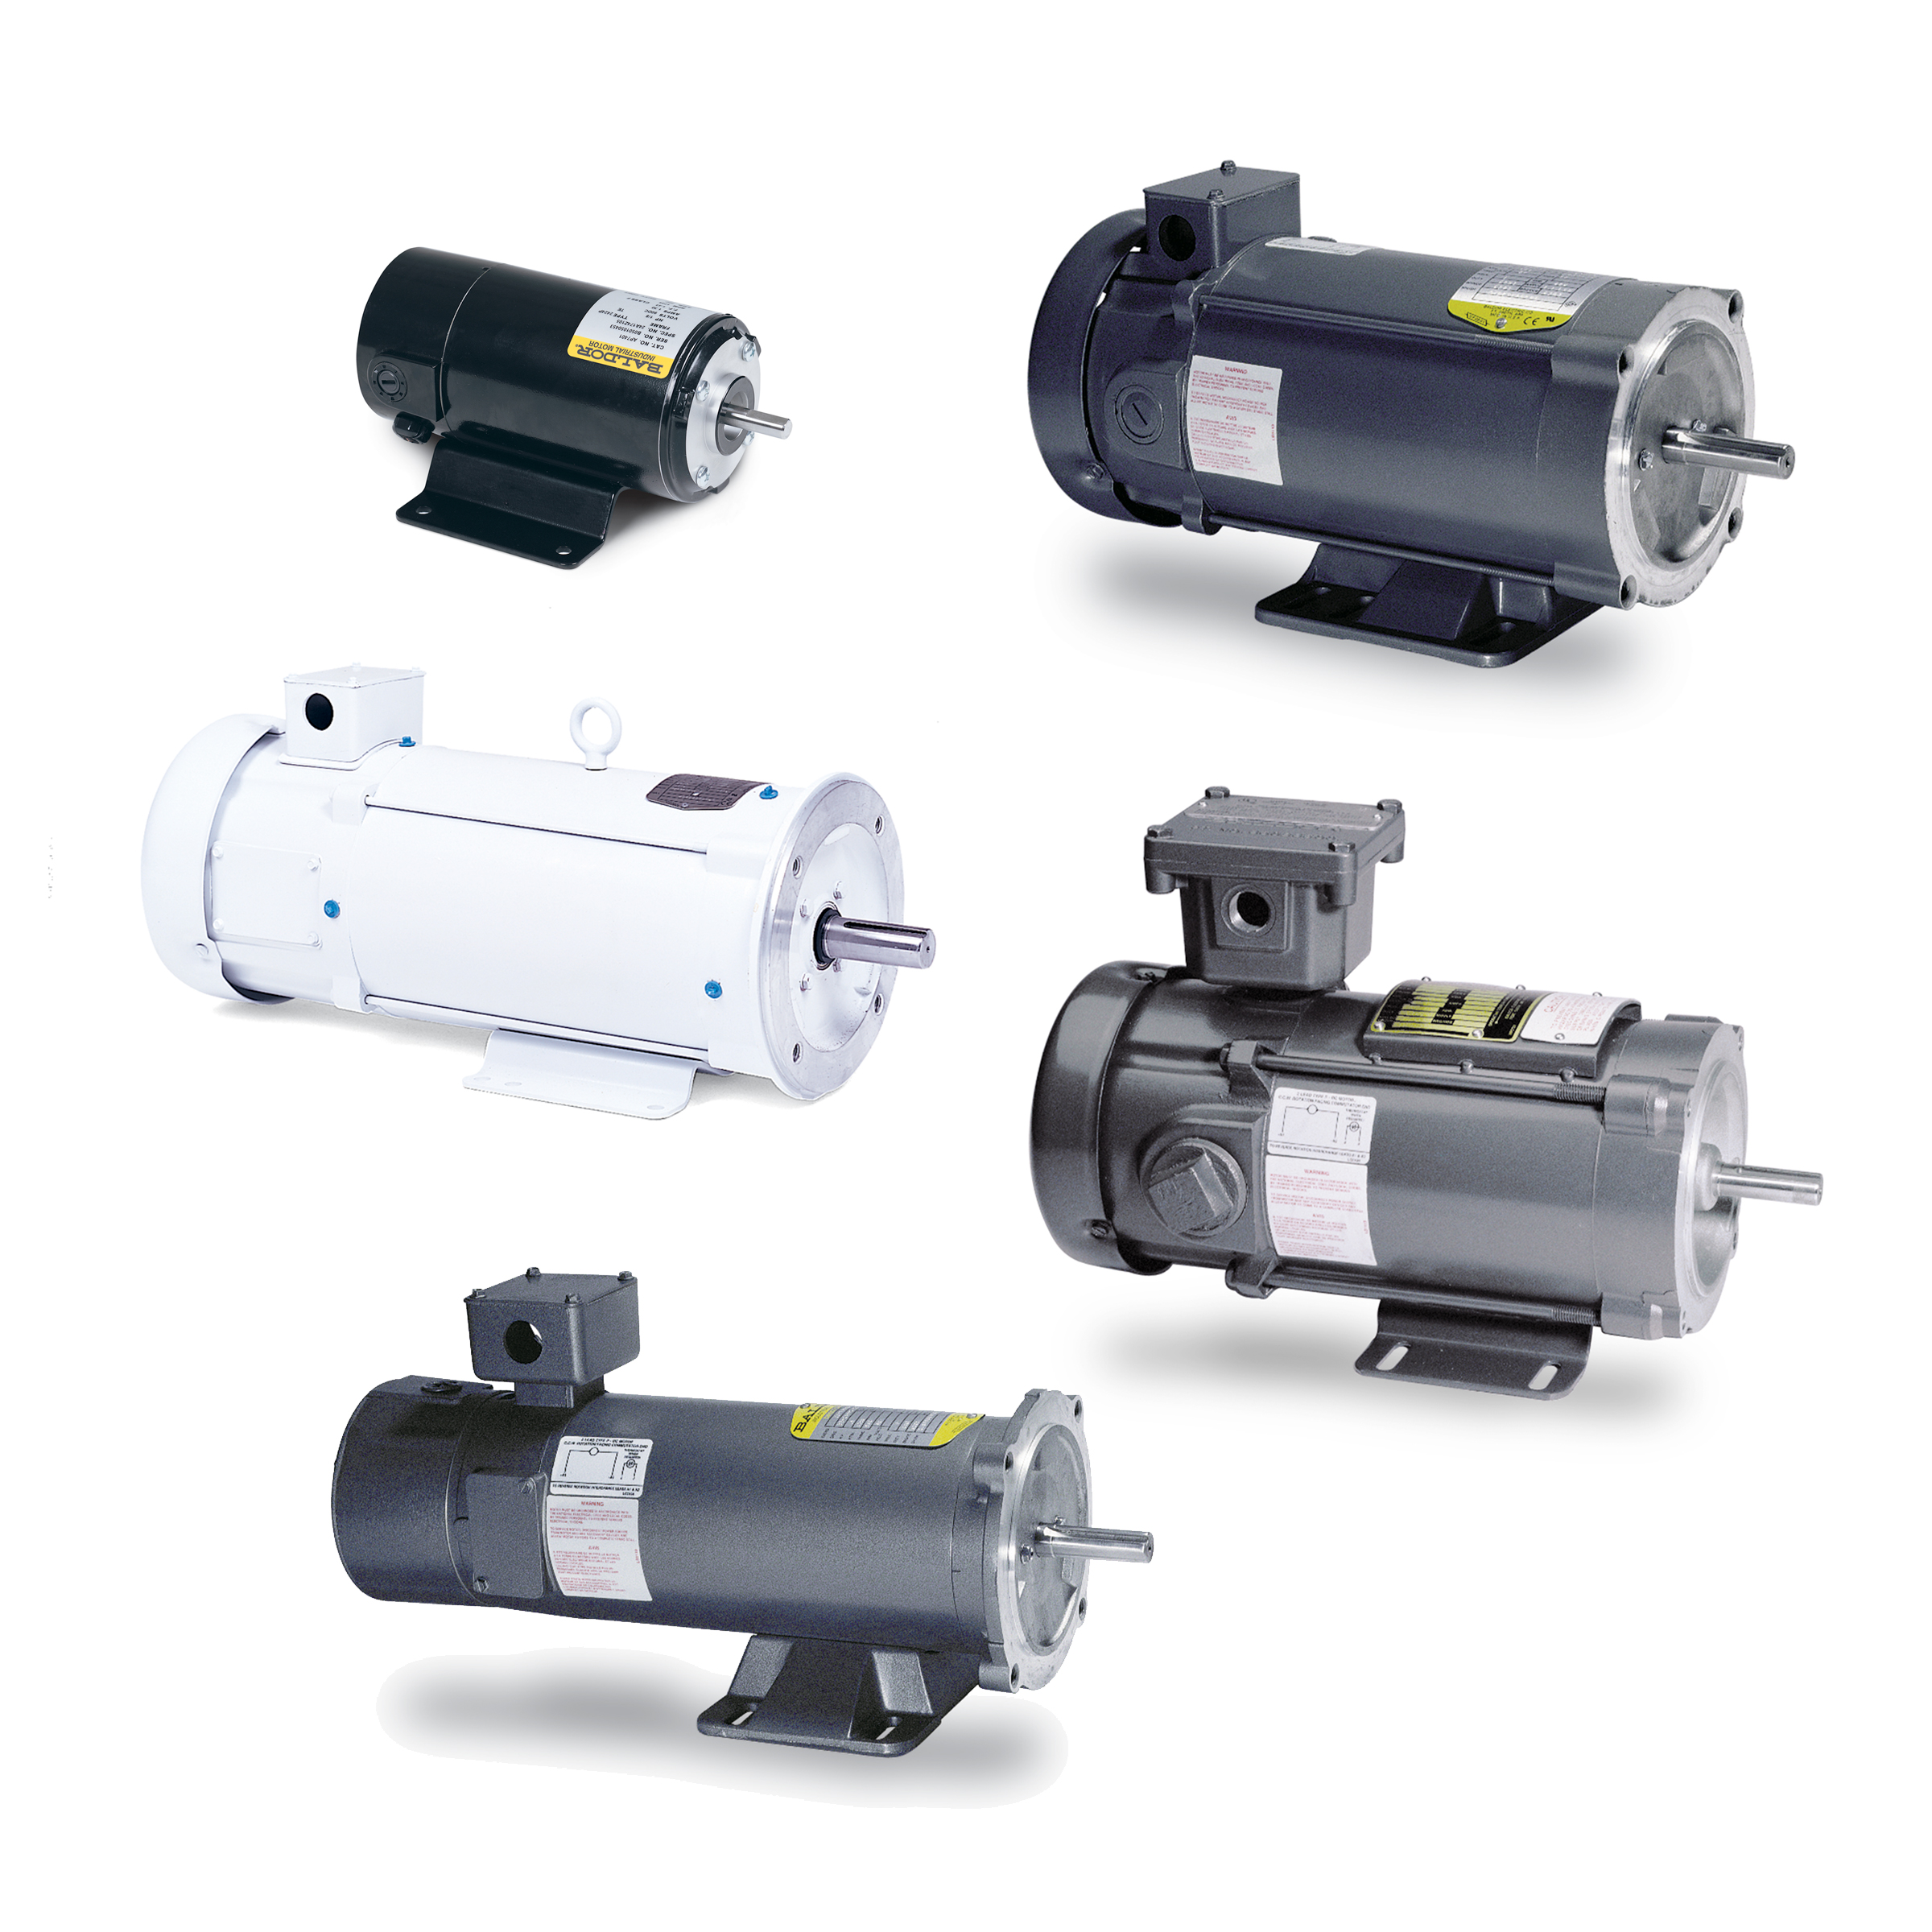 baldor reliance dc permanent magnet motor family.ashx?bc=white&as=1&w=1024 dc motors baldor com Electric Motor Wiring Diagram at edmiracle.co